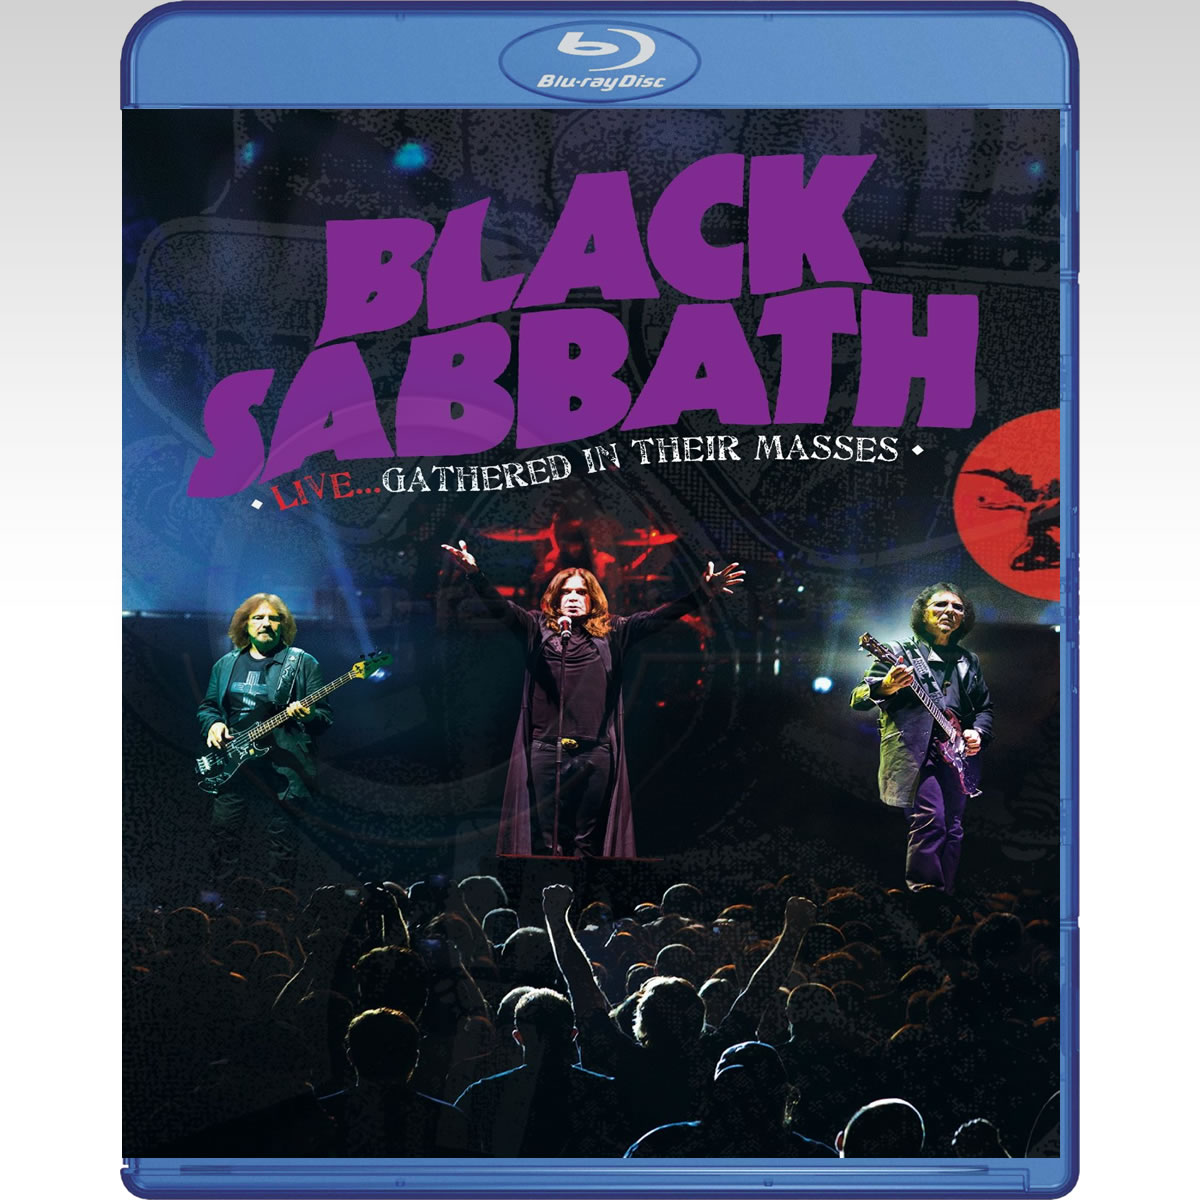 BLACK SABBATH: LIVE...GATHERED IN THEIR MASSES (BLU-RAY)